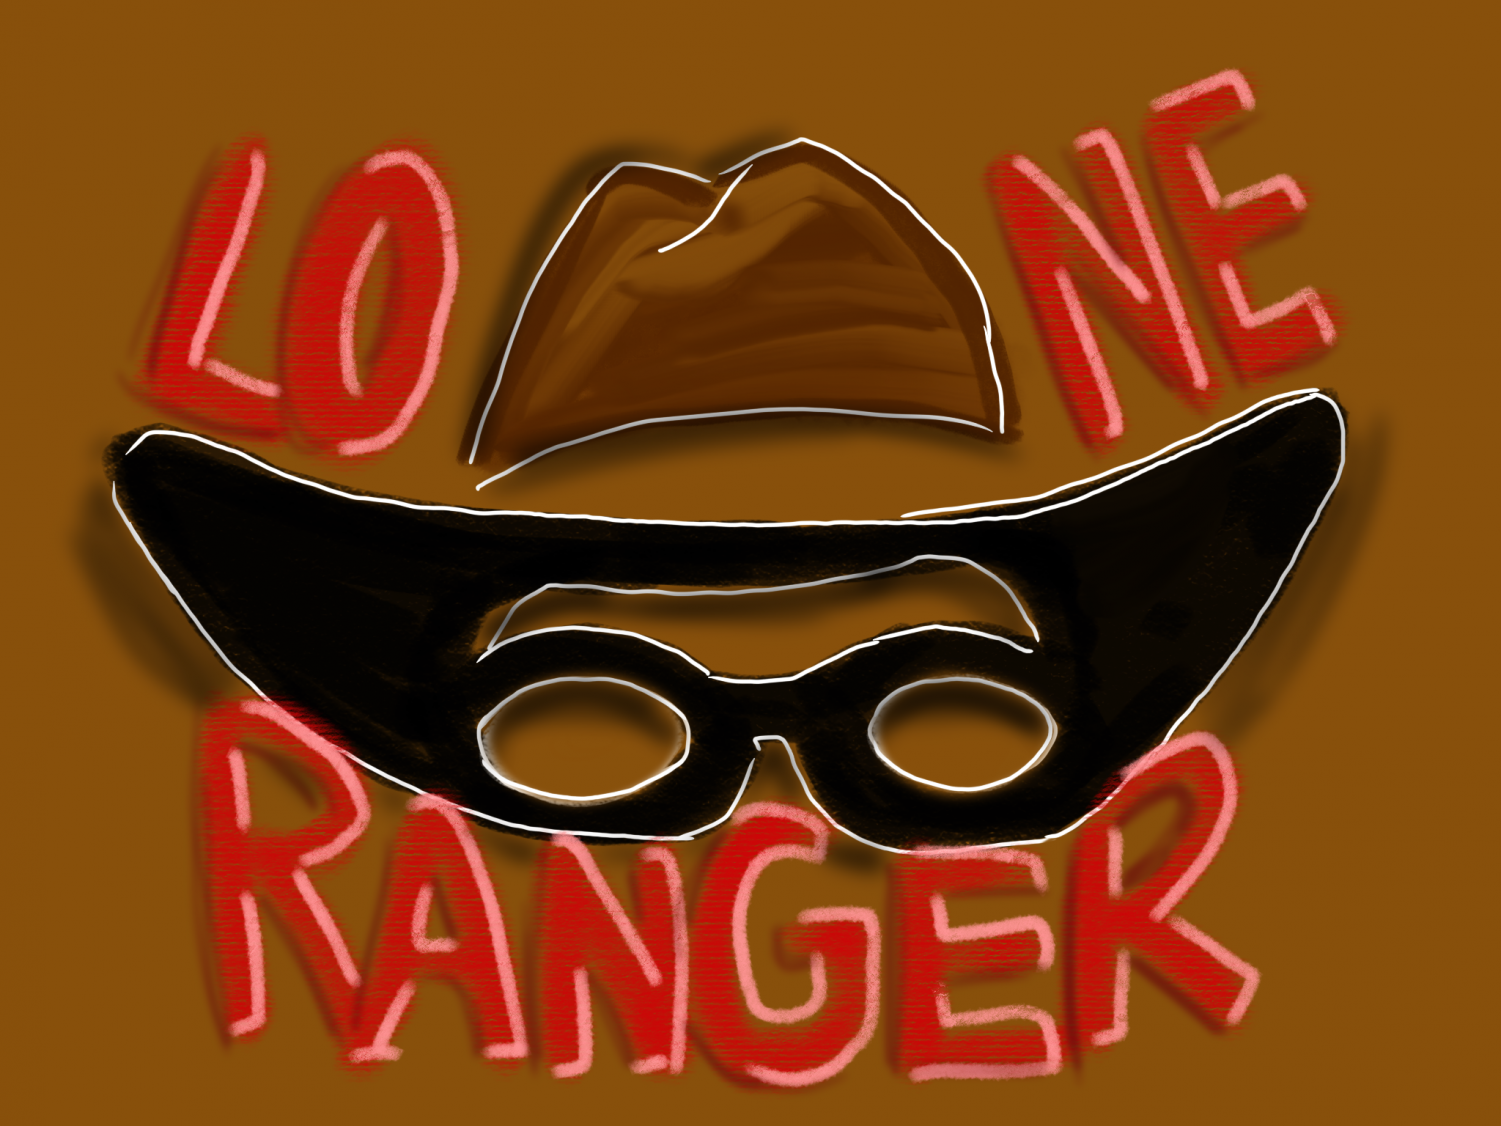 Lone Ranger: A factor of Depression